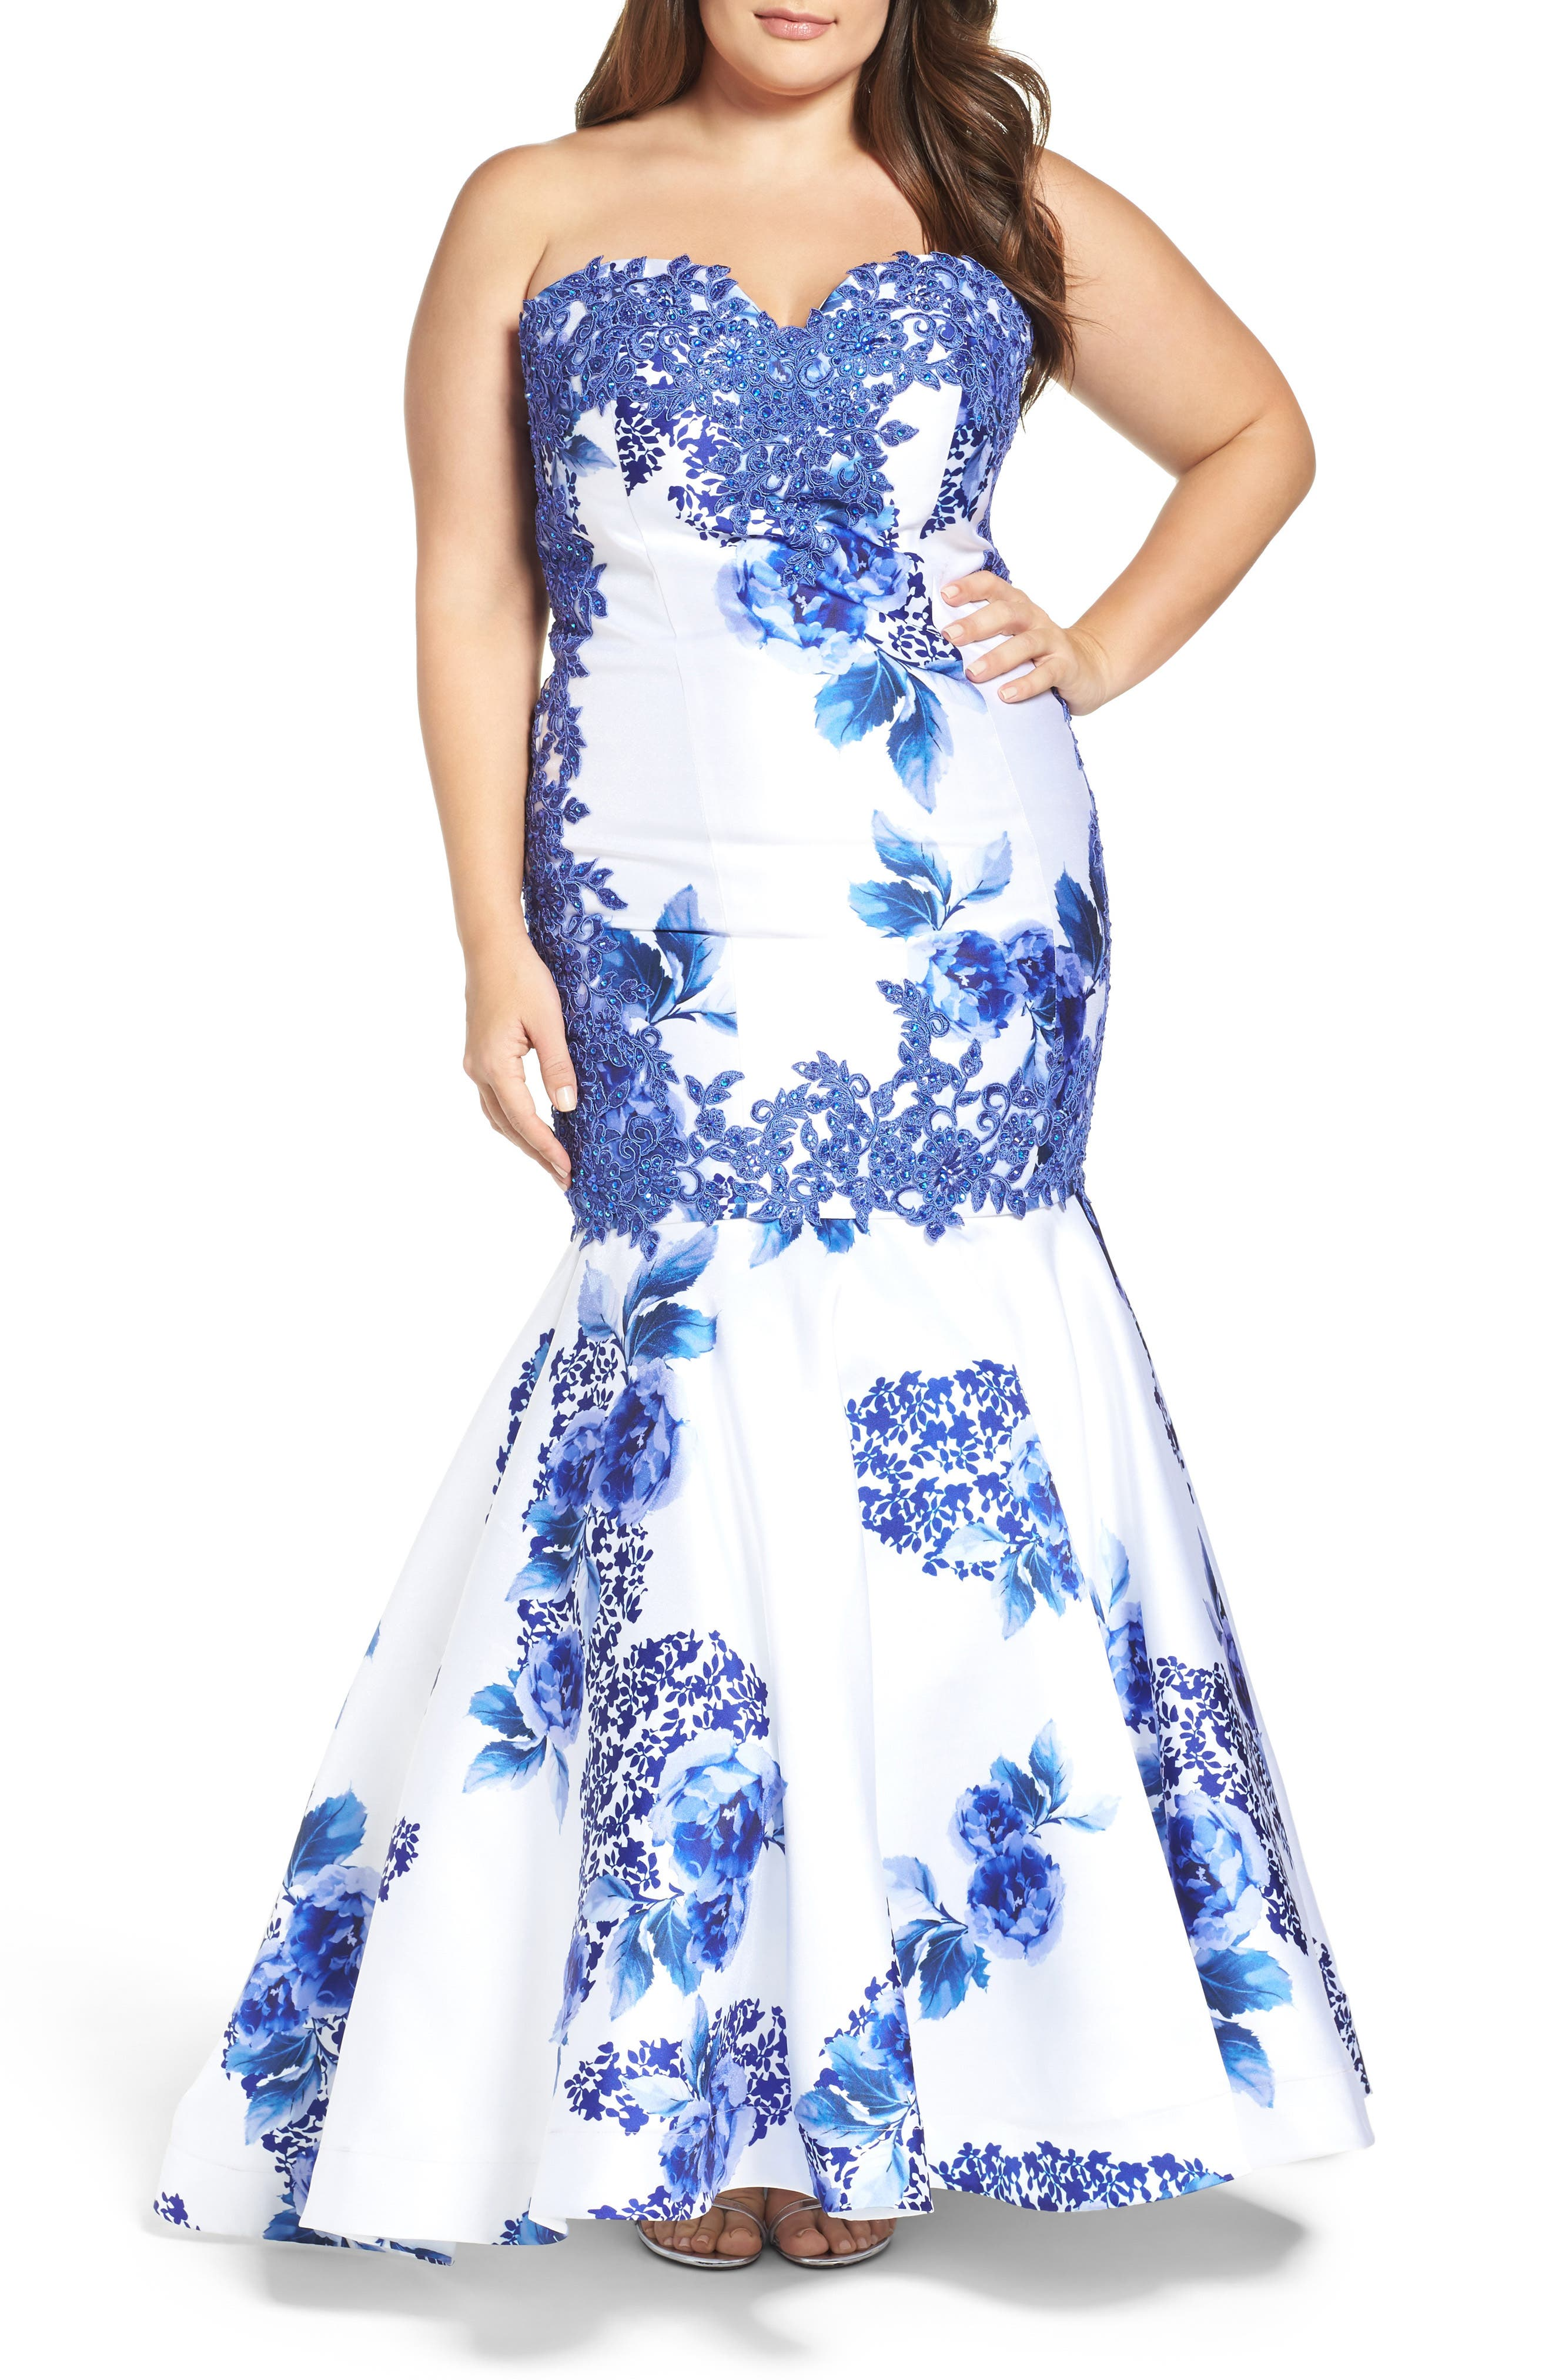 Embellished Strapless Zip Off Mermaid Gown,                             Main thumbnail 1, color,                             BLUE FLORAL